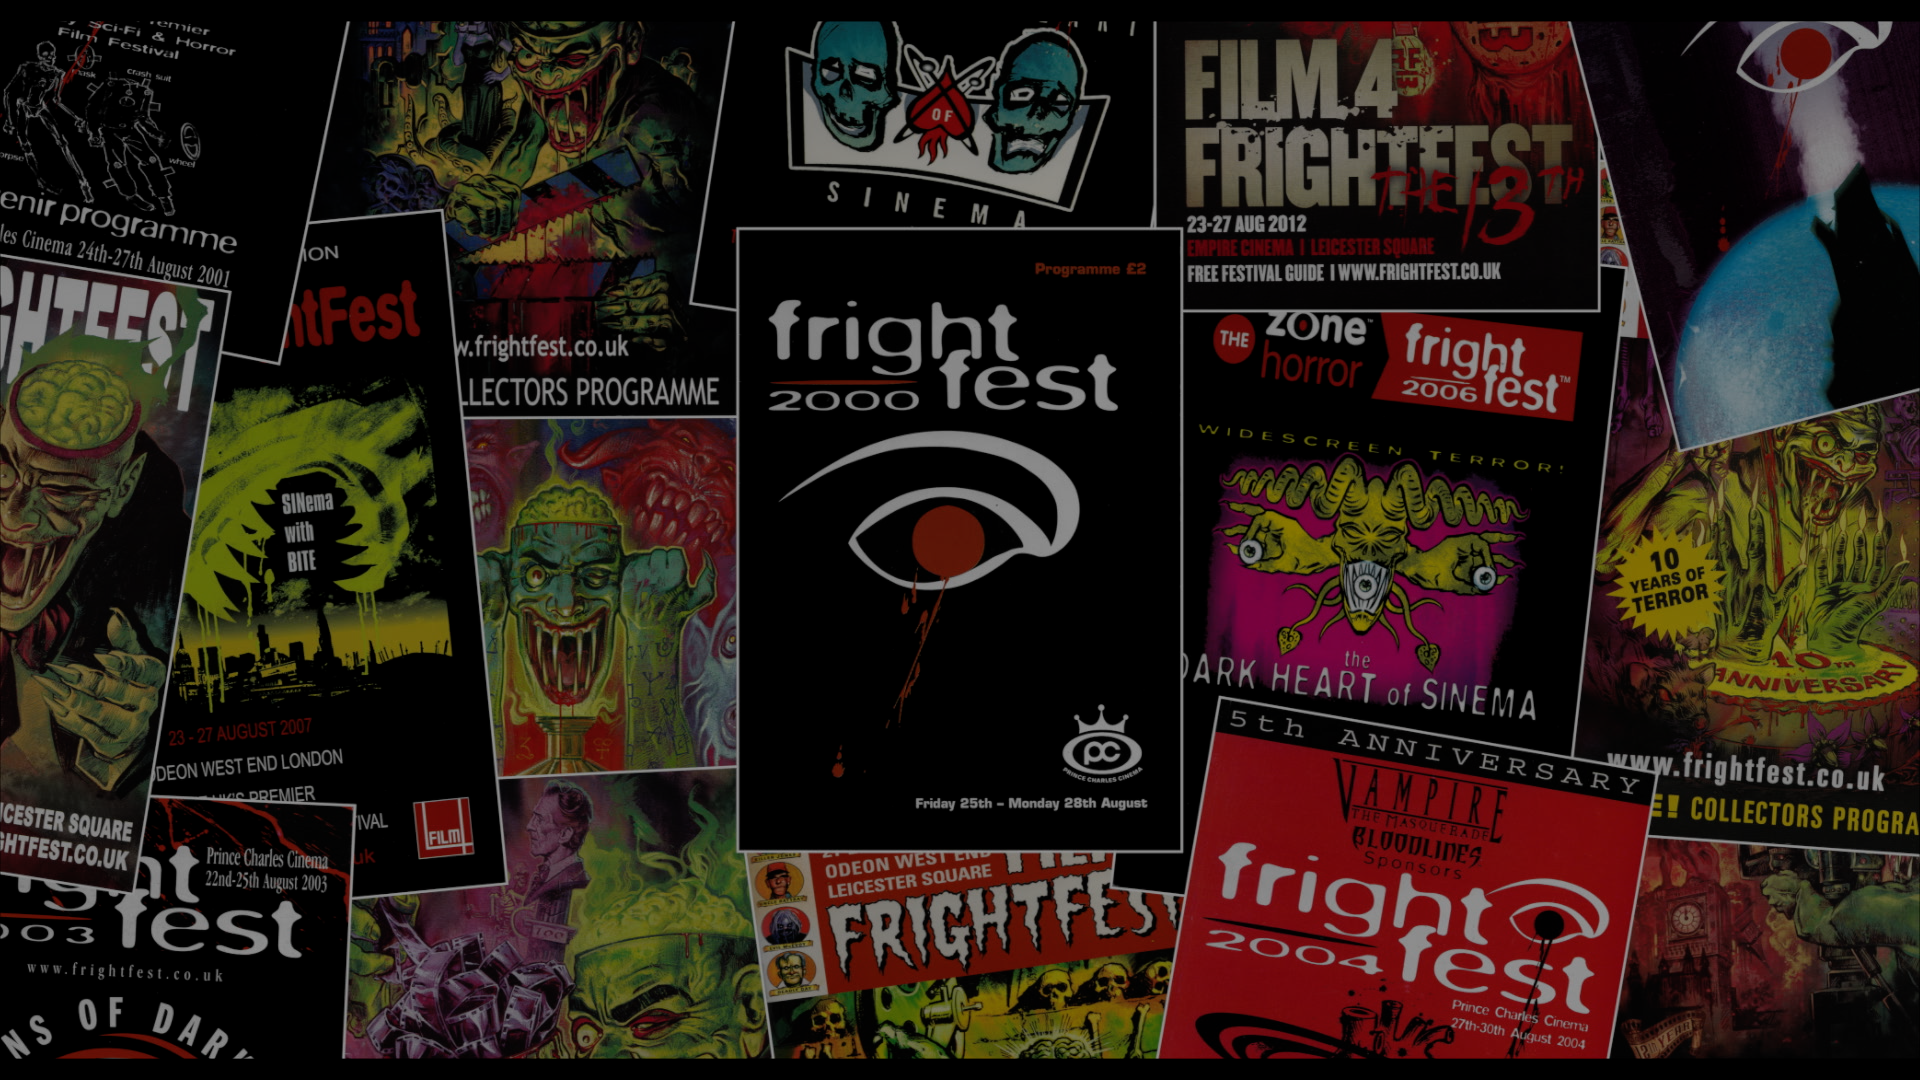 FrightFest- Beneath The Dark Heart Of Ci